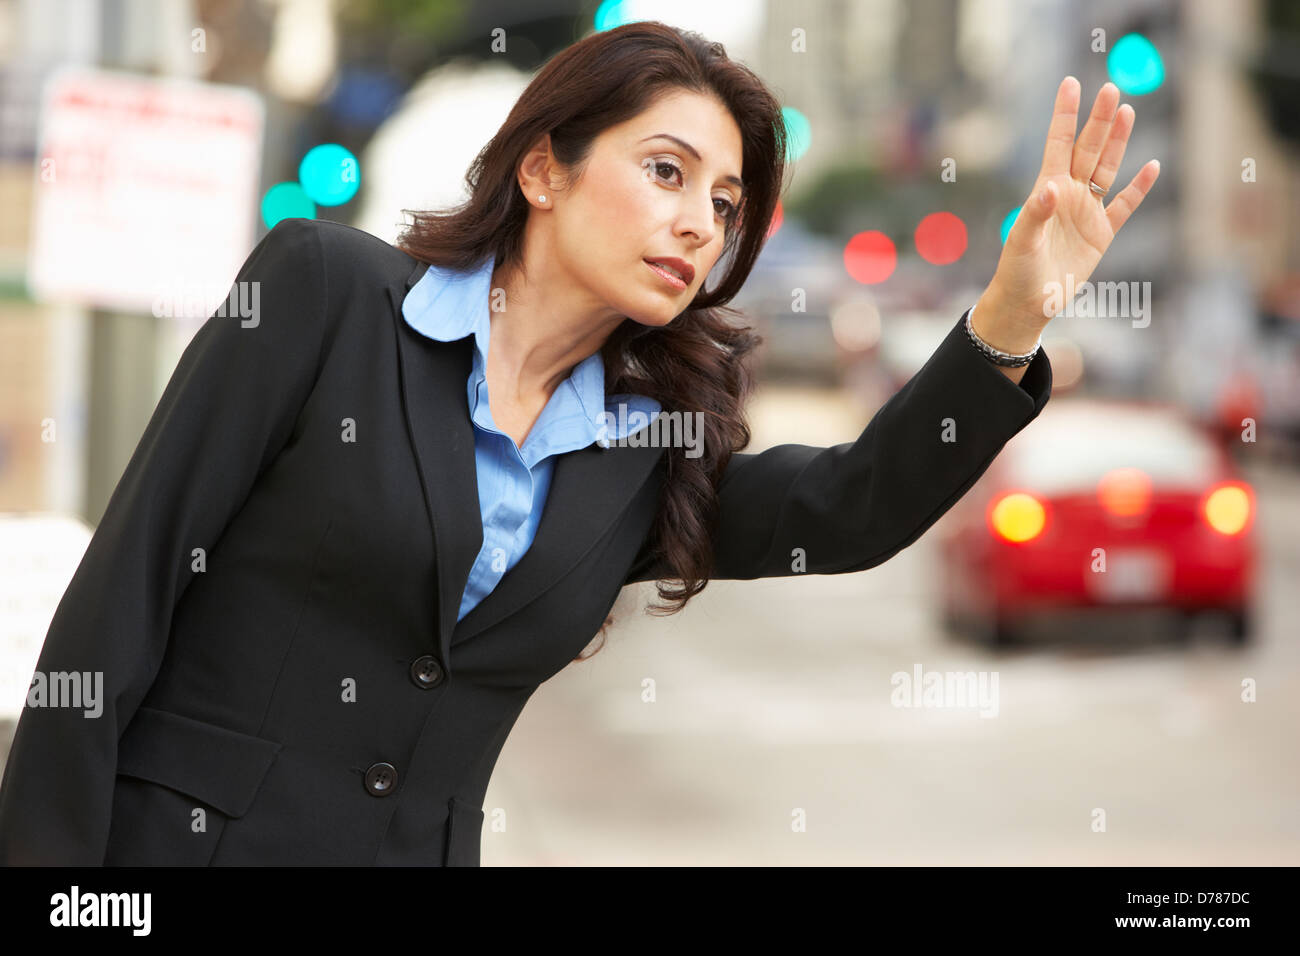 Businesswoman Hailing Taxi In Busy Street - Stock Image